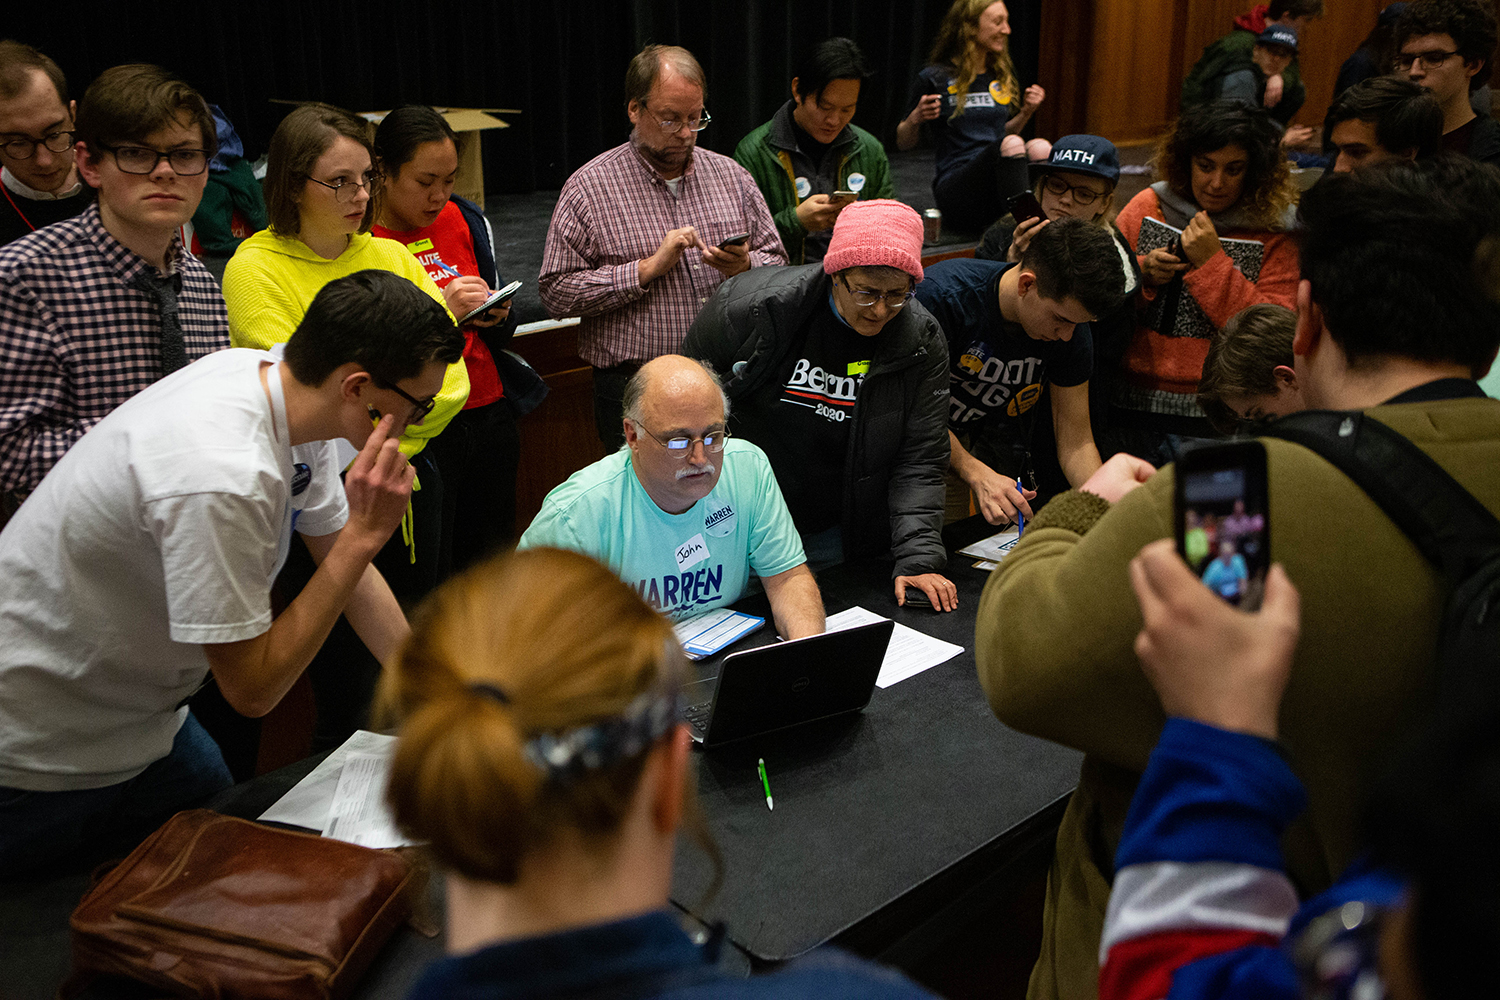 John Deeth, volunteer from Johnson County Democrats, recounts before assigning delegates during the caucus at the Iowa Memorial Union on Monday February 3, 2020.